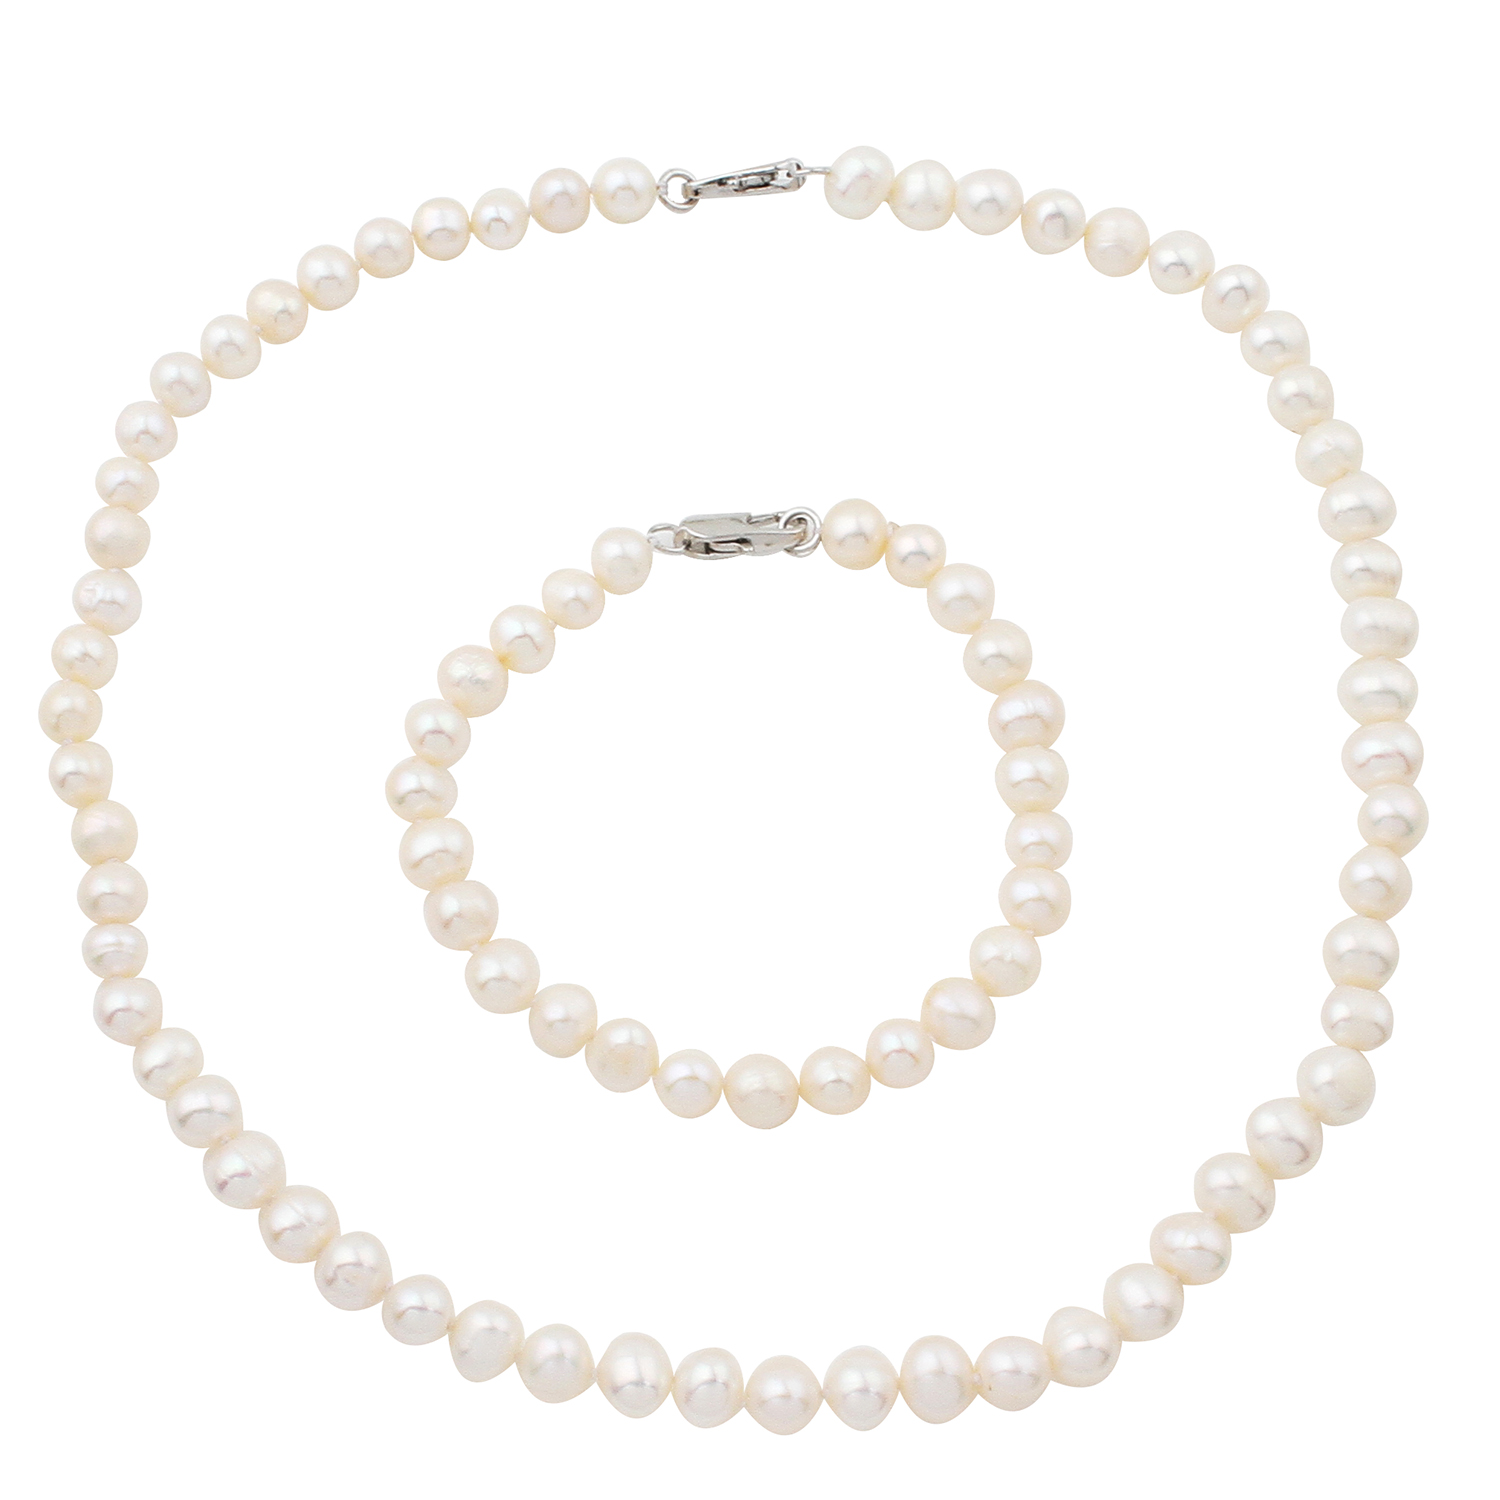 Necklace Earrings Beads Finding Jewelry-Making Bracelat Pearl White Natural 7-8mm Rice